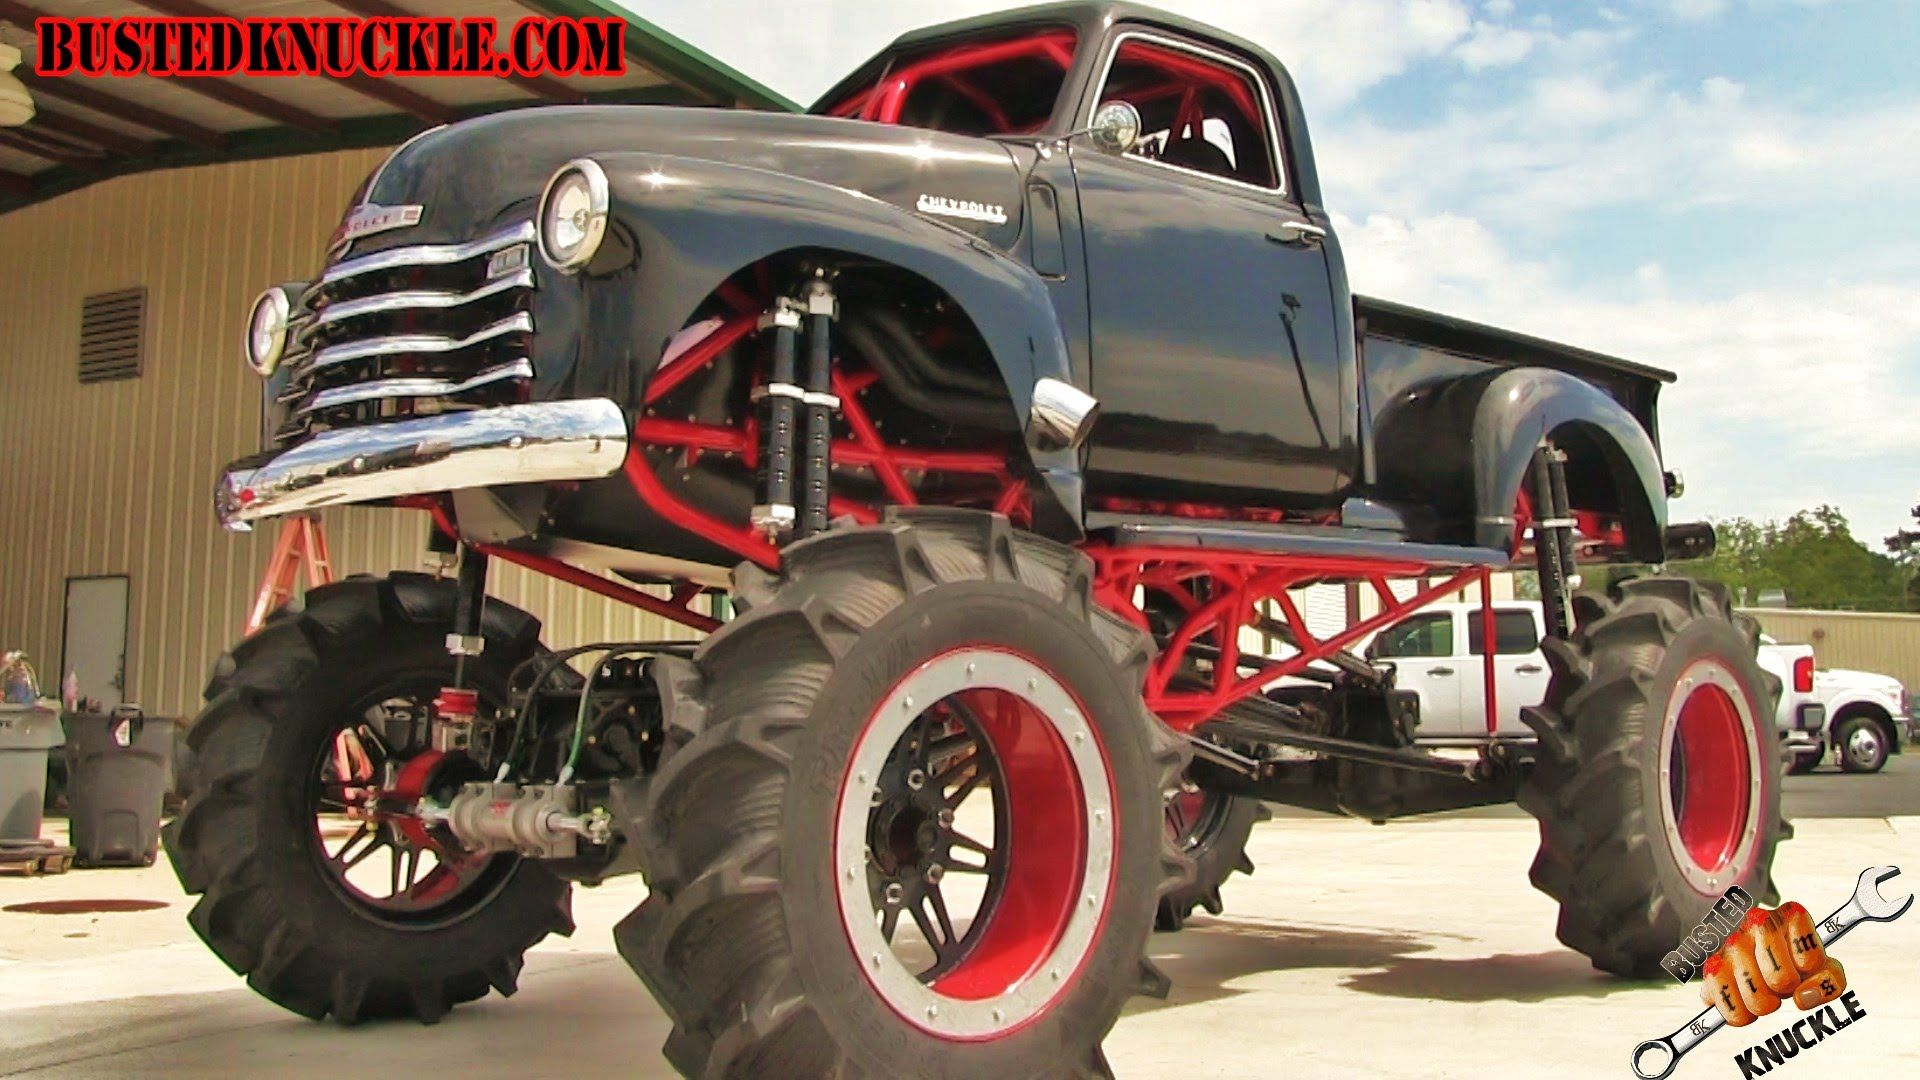 1300 horsepower sick mega mud truck today we check out the 1950 chevrolet truck known as the sick 50 mega truck we ve seen some gnarly mega truck racing